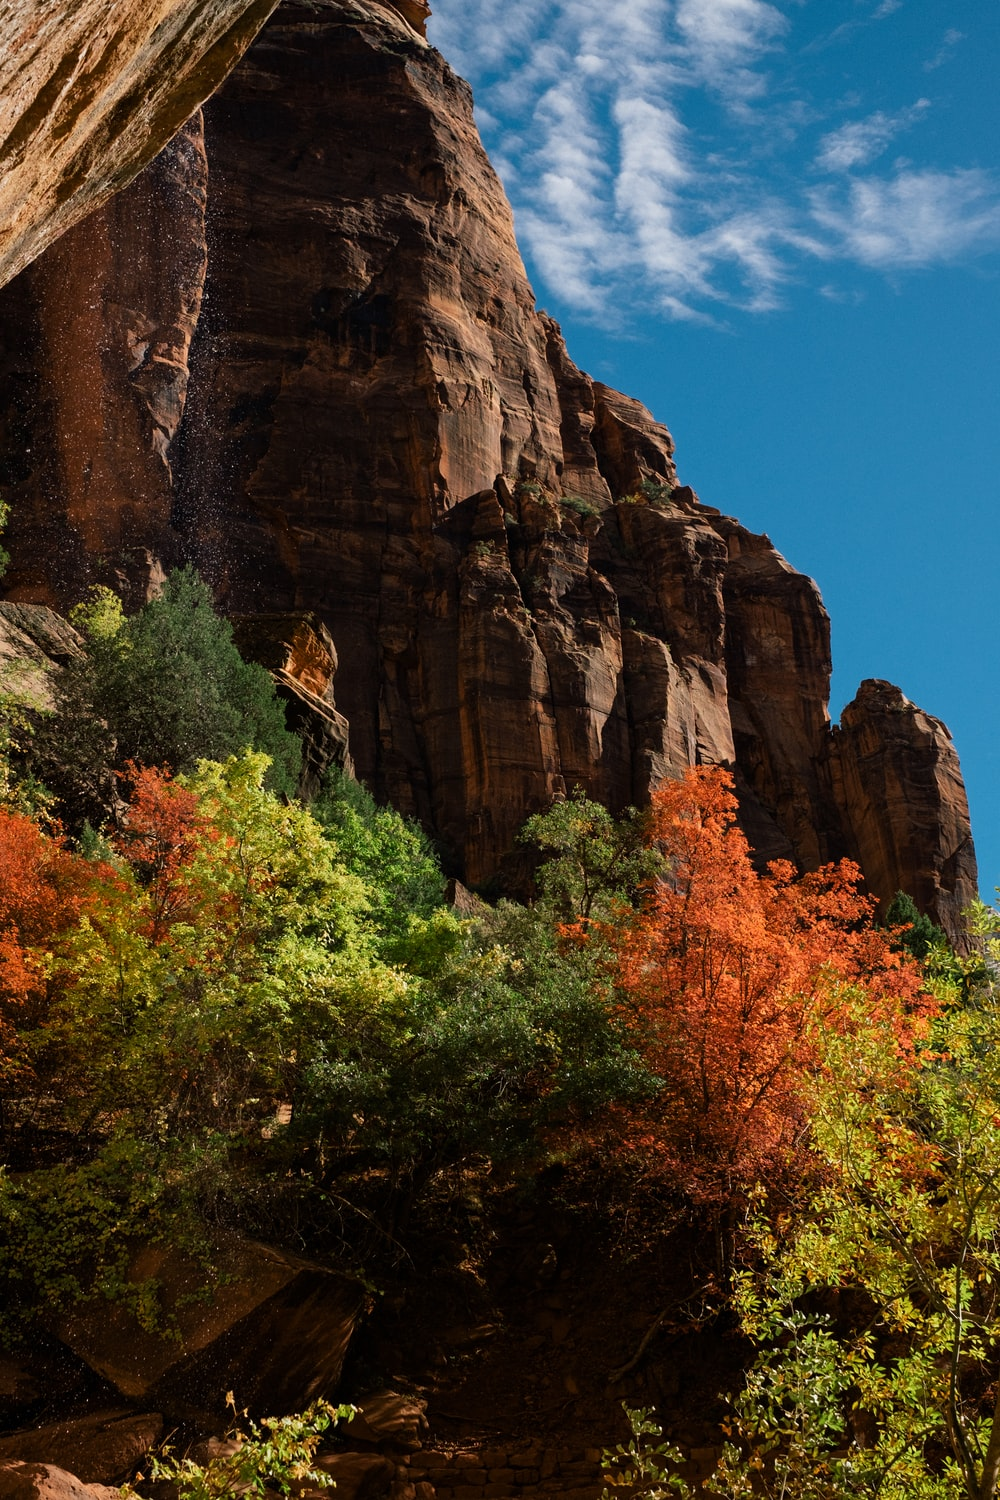 green trees near brown rocky mountain under blue sky during daytime